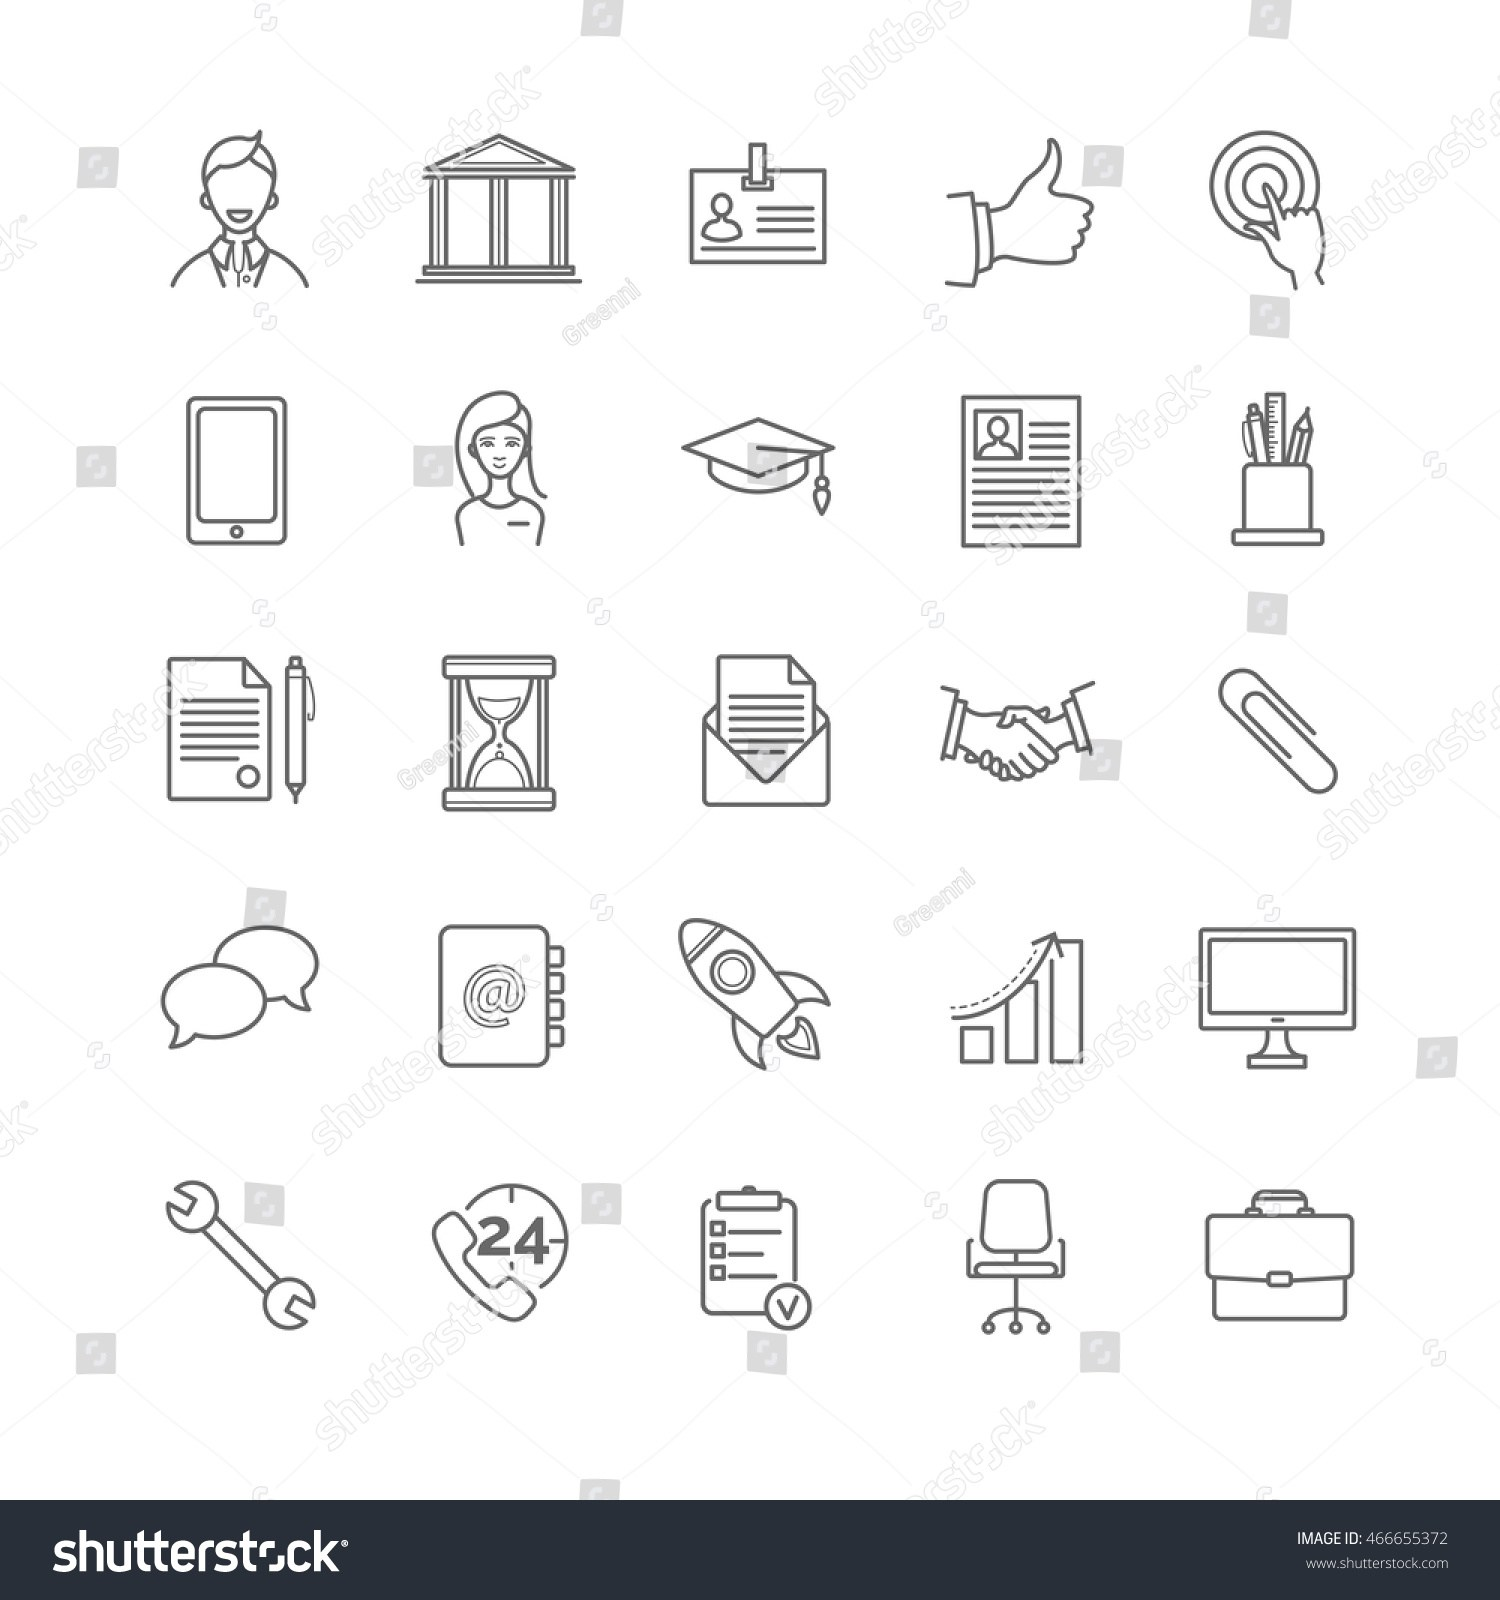 1500x1600 Resume Icons Free Final Cut Pro X Templates New Free Resume Icons